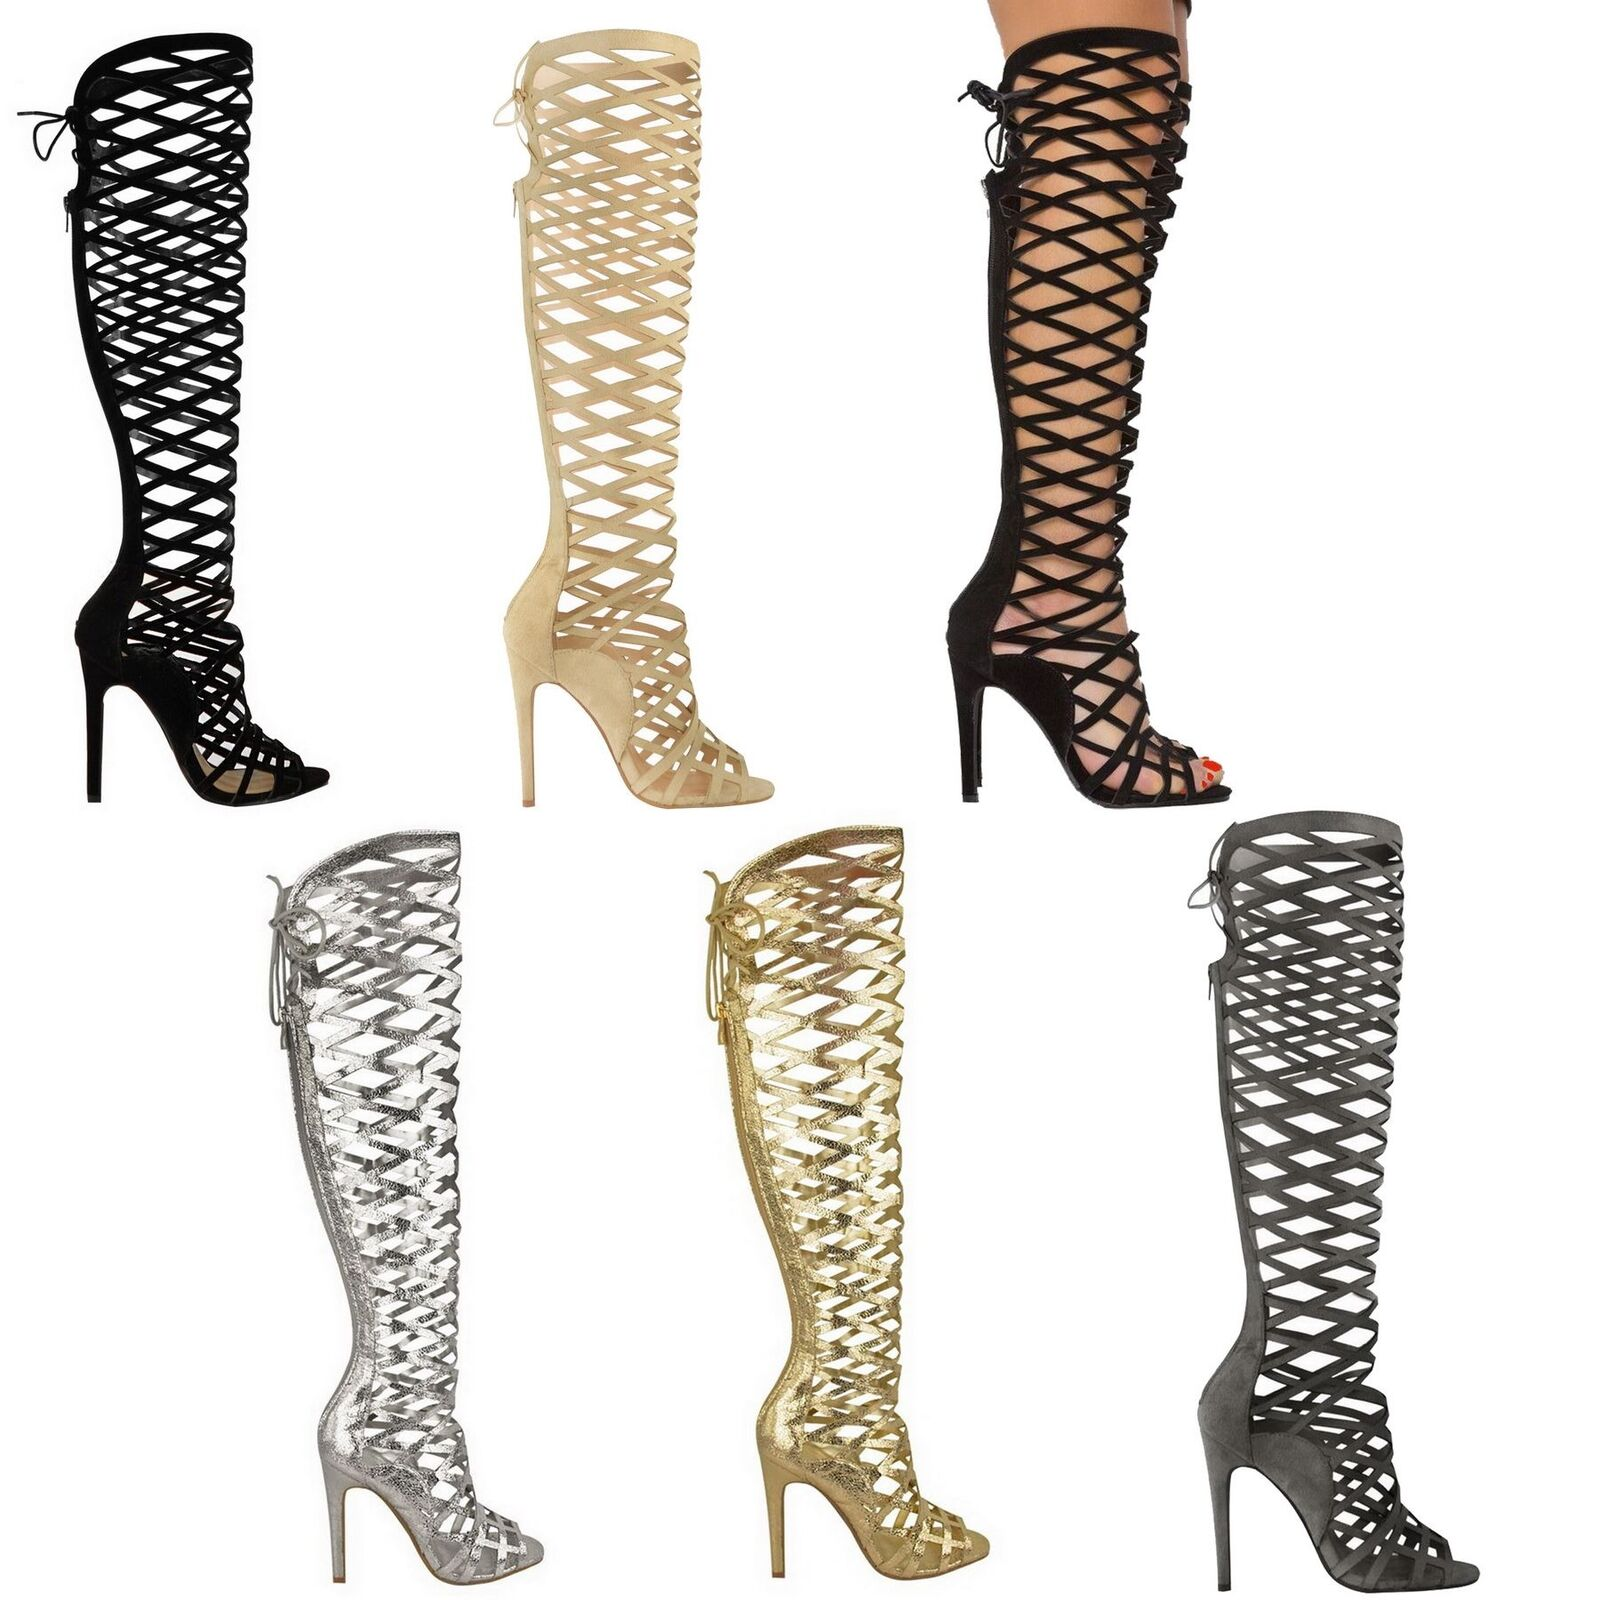 LADIES WOMENS CUT OUT STILETTO HEEL LACE SANDALS GLADIATOR KNEE BOOTS SHOES SIZE